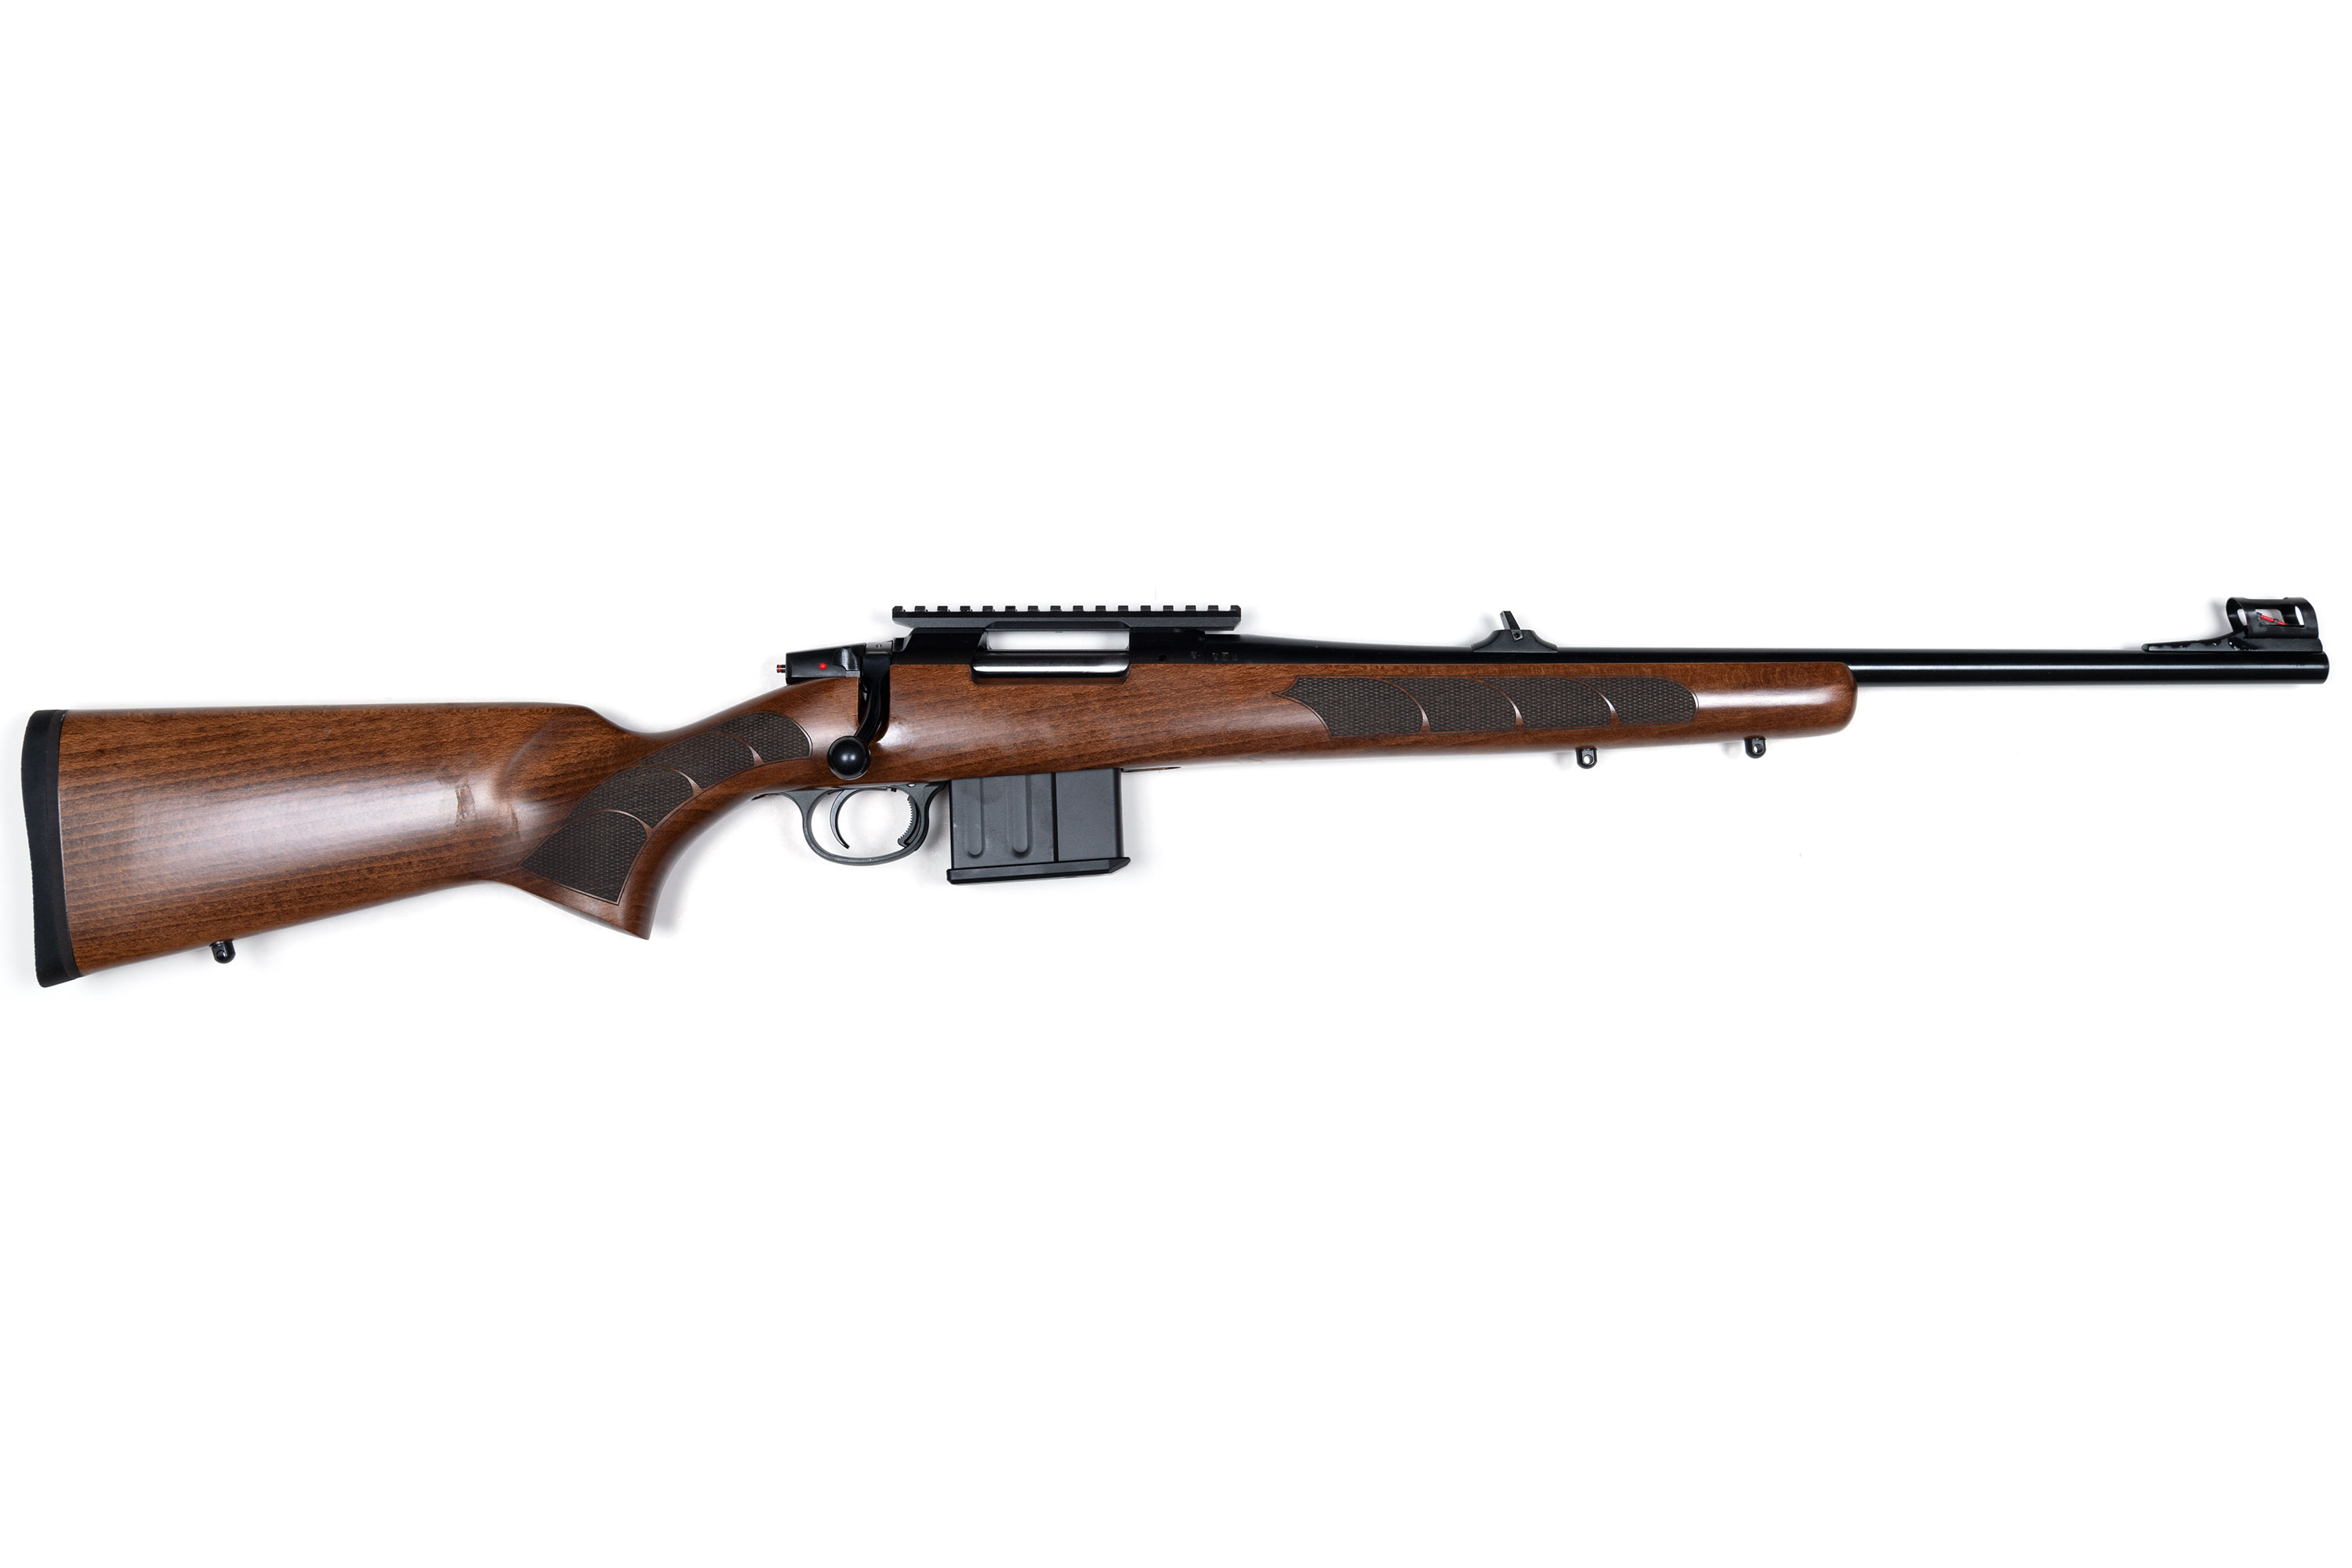 CZ 557 Range Rifle in 308 Win